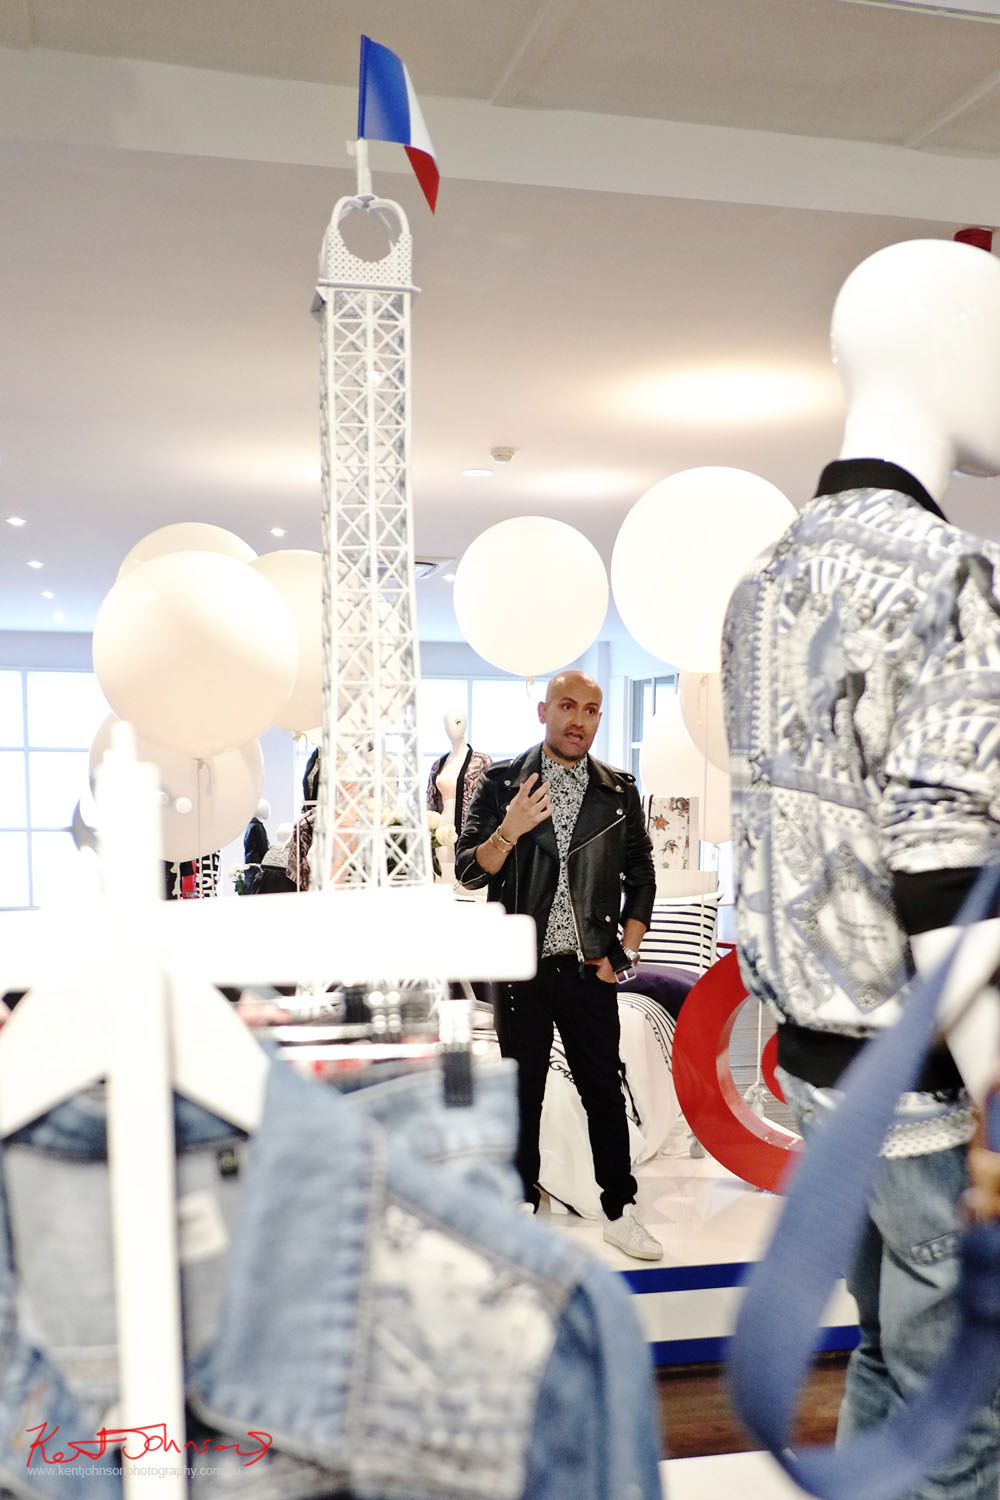 Mr Anthony Pecora General Manager of Design Innovation for Target speaking at the media launch event of #JPGforTarget